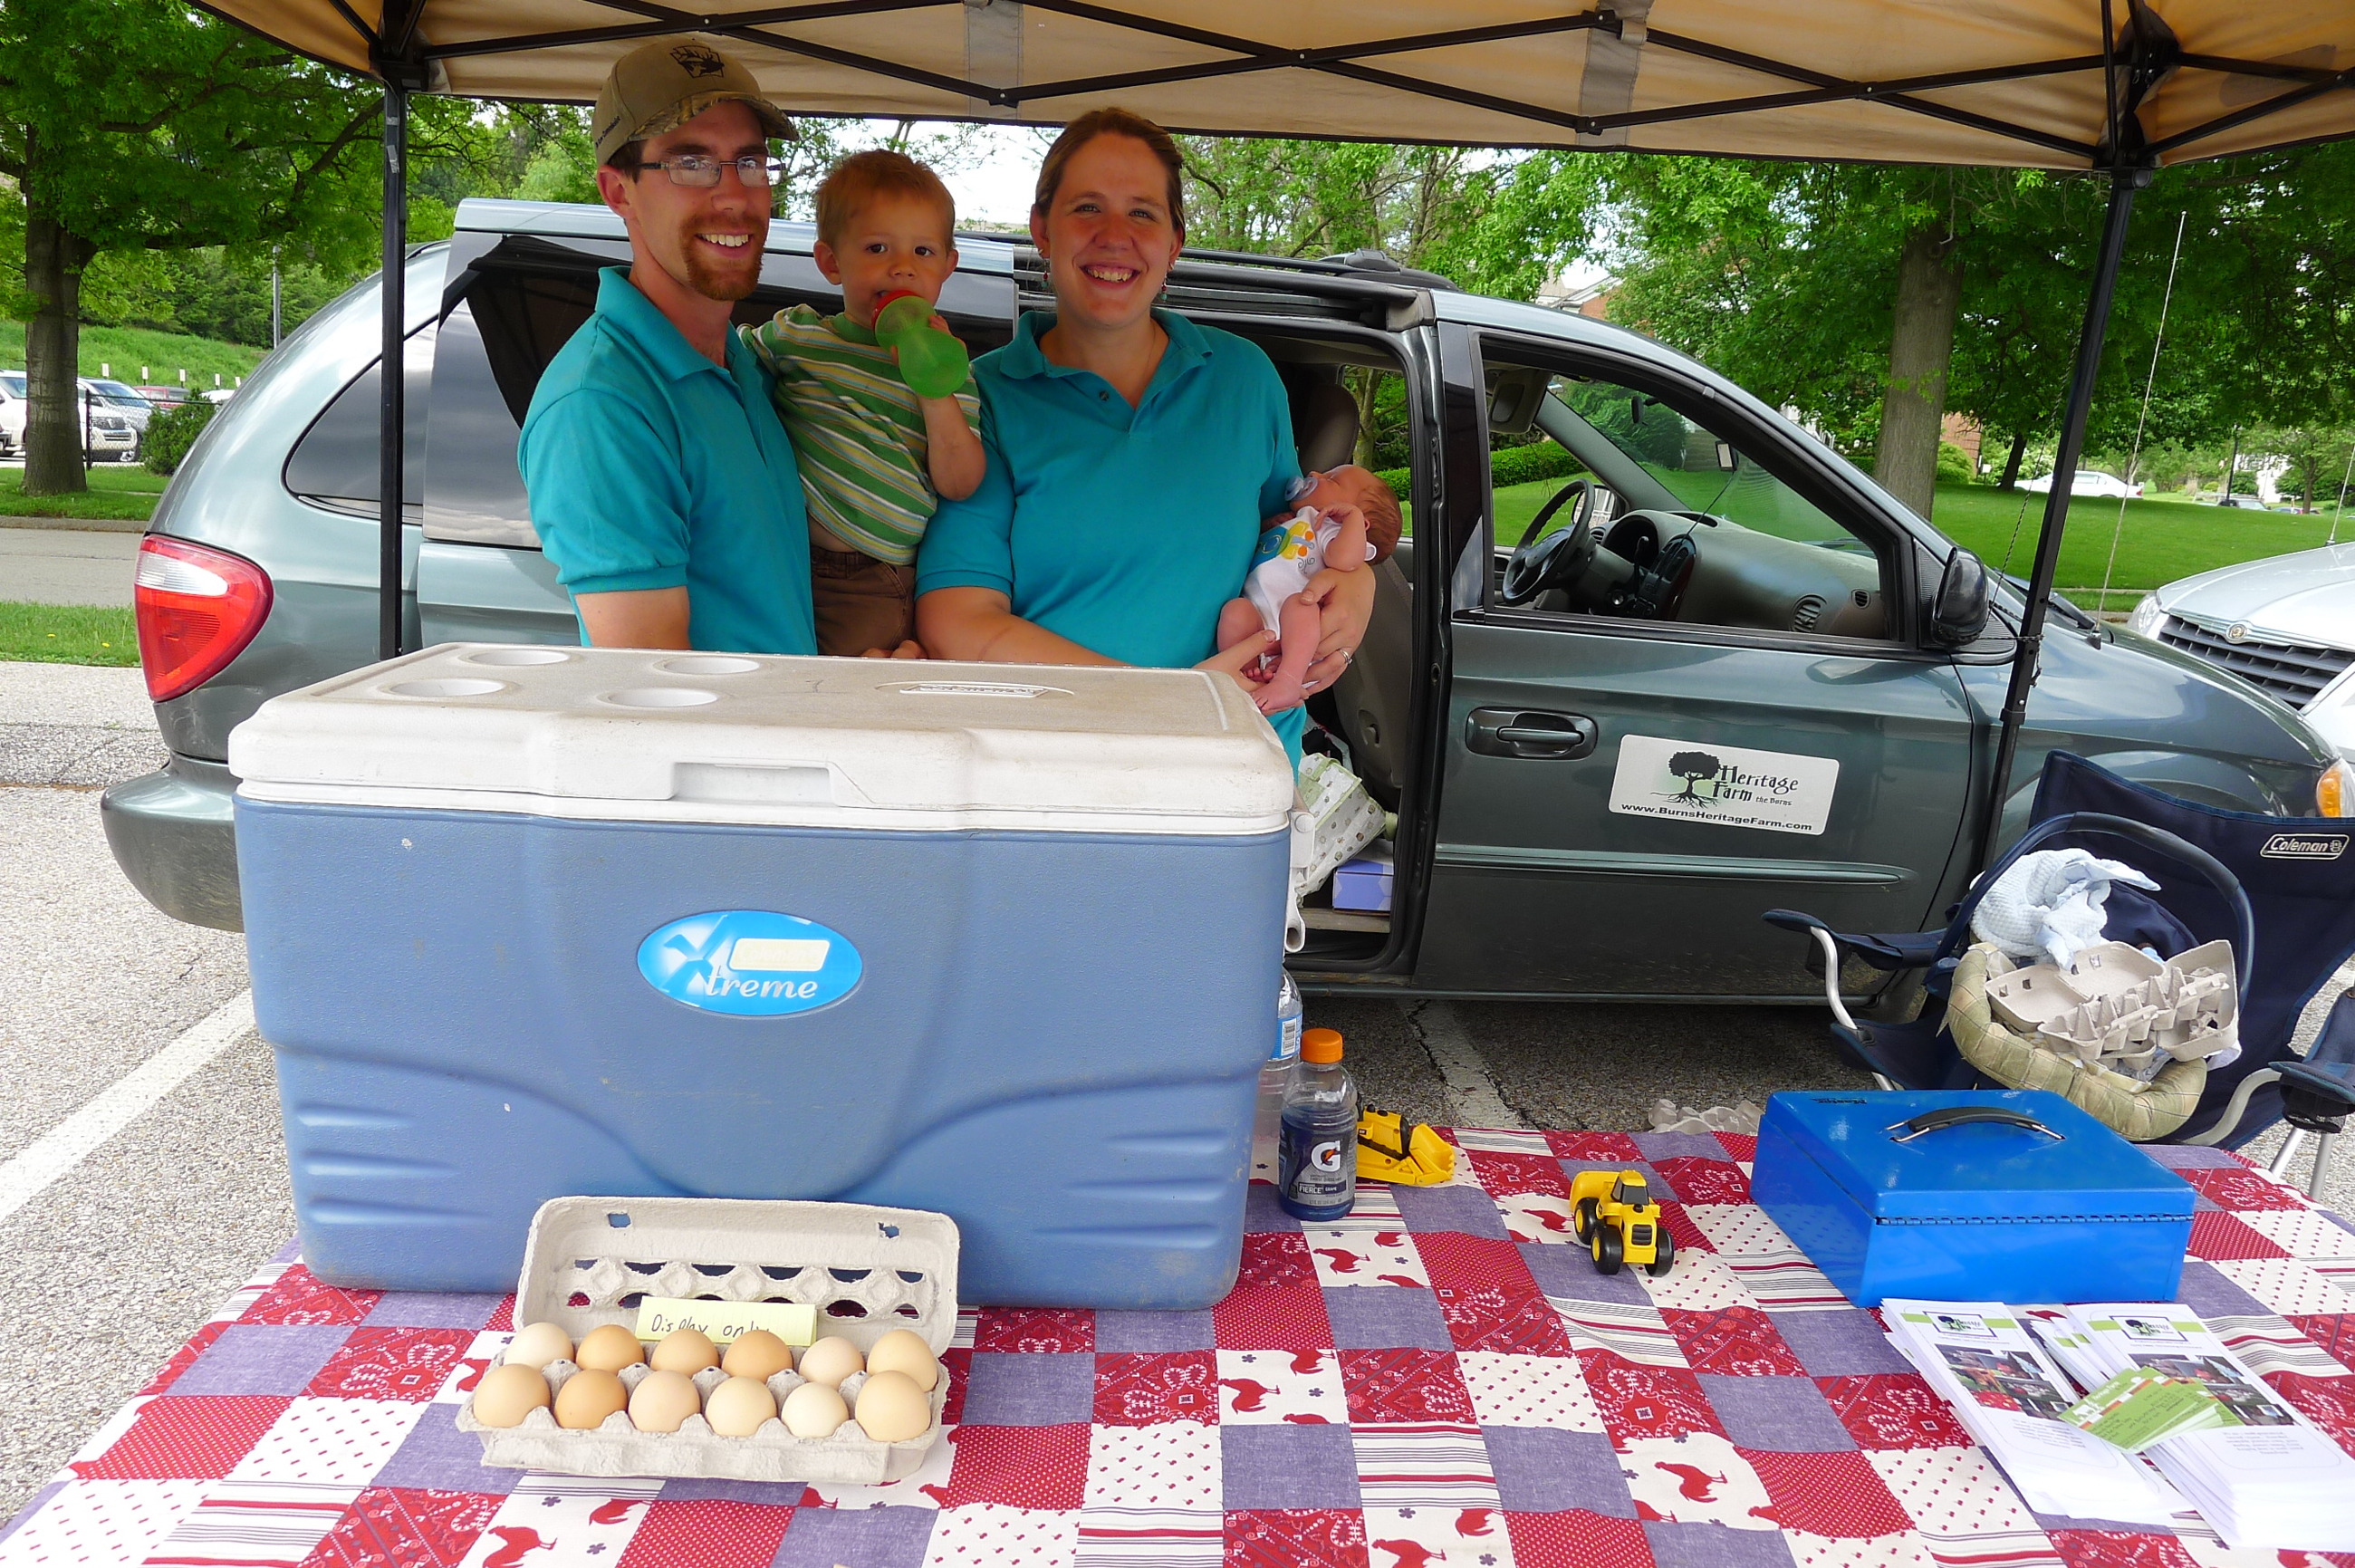 P1230871-18 The Burns family drove from their Heritage Farm in Ridgway about 2 1/2 hours away: Pete, with Micah, 2, and Patrick, 10 days old, and wife Tara at opening day at the Upper St. Clair Farmers Market on May 29.